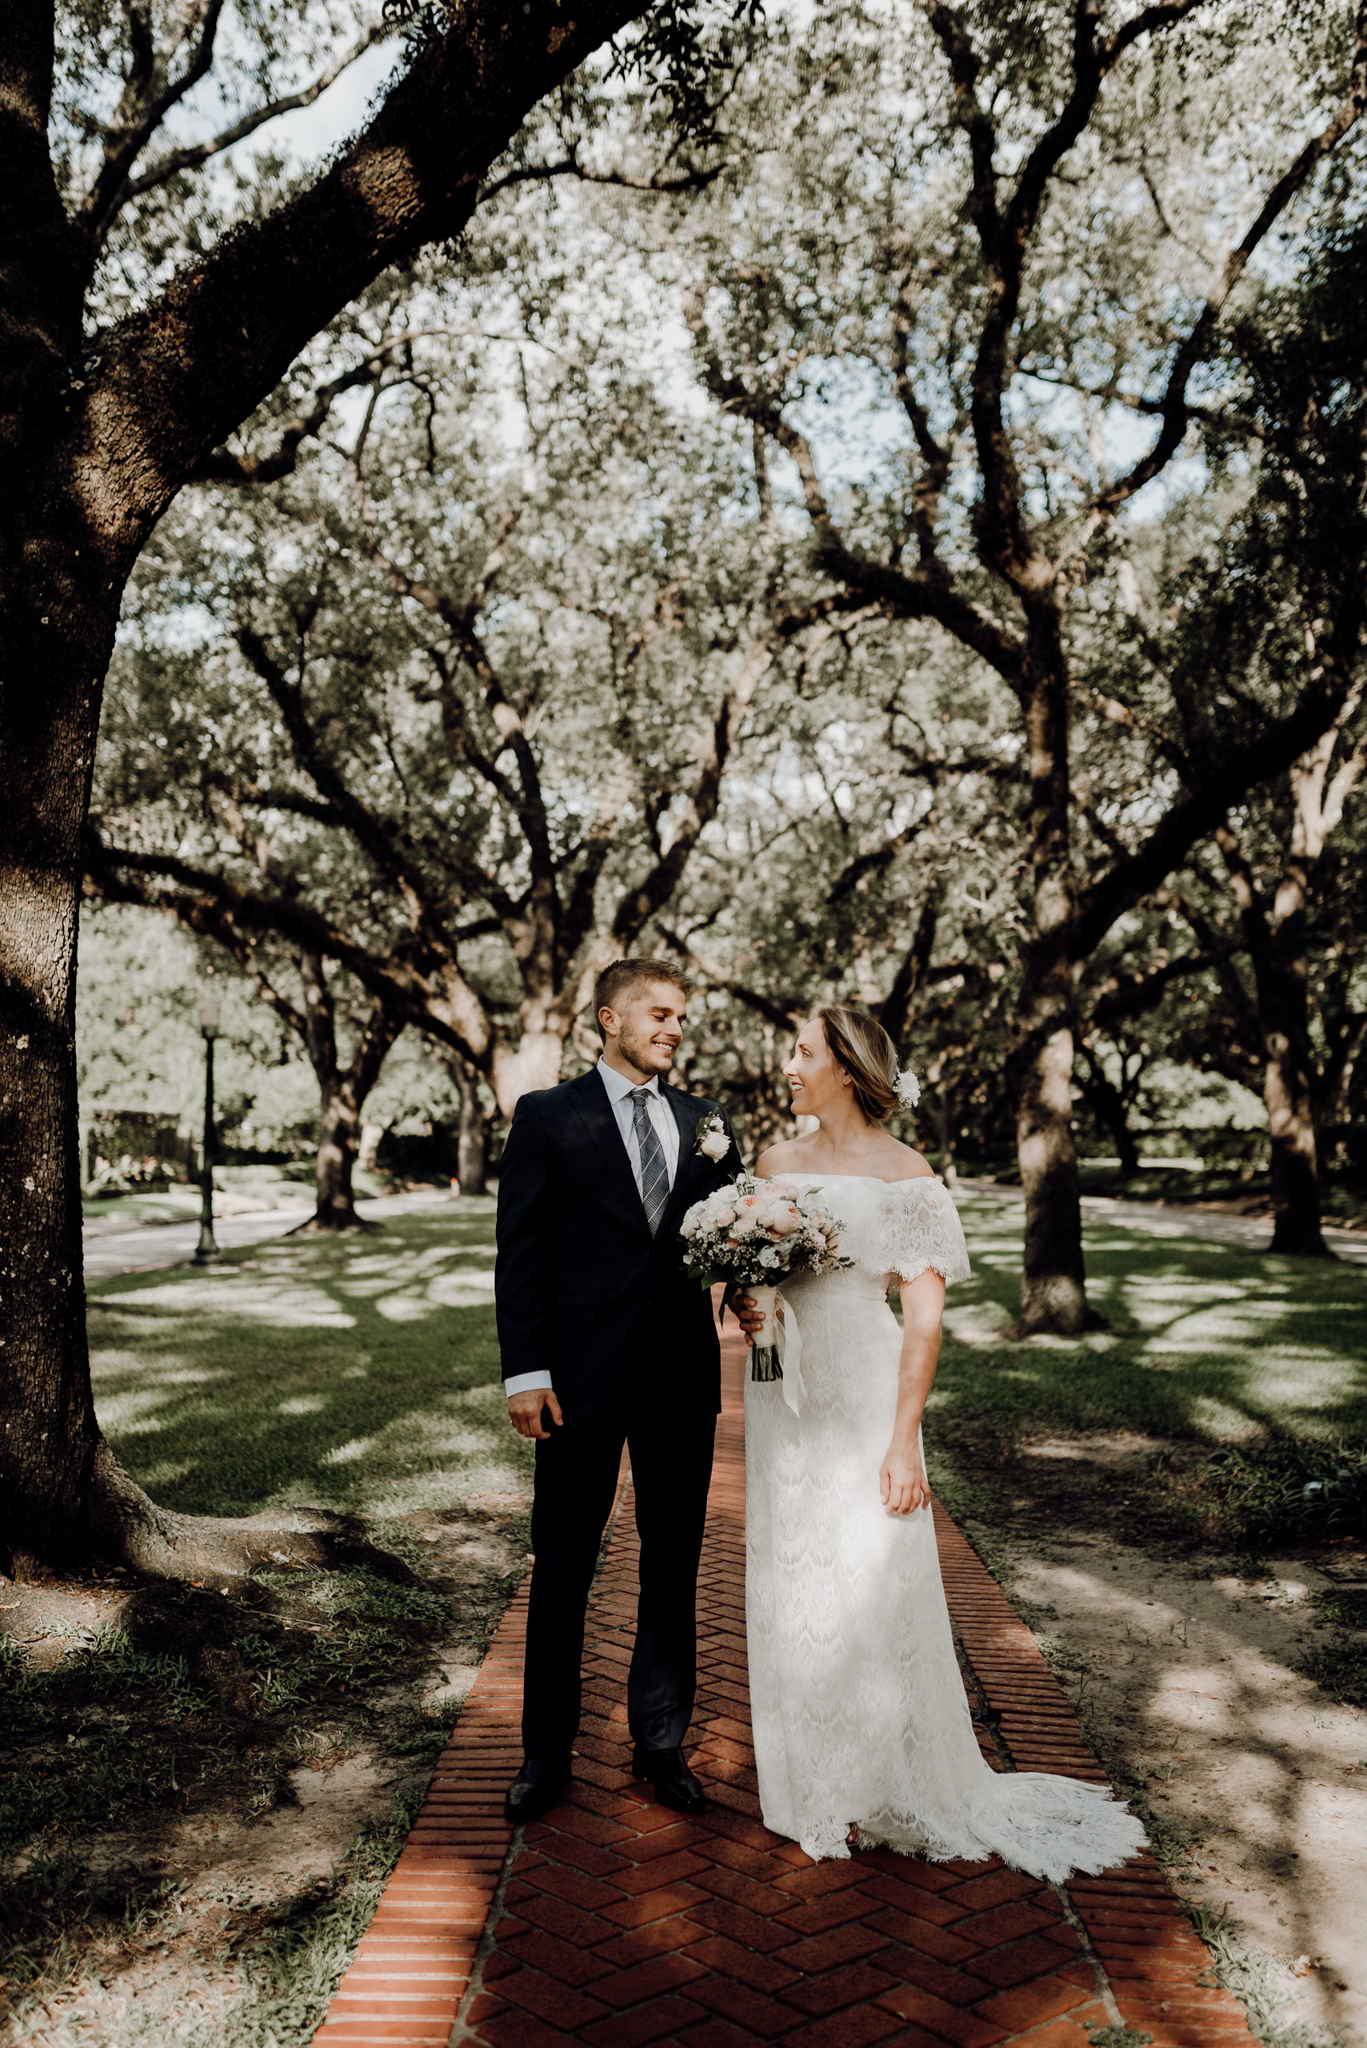 Houston Wedding Photographer-North Blvd Intimate Elopement- Houston Wedding Photographer -Kristen Giles Photography-2.jpg